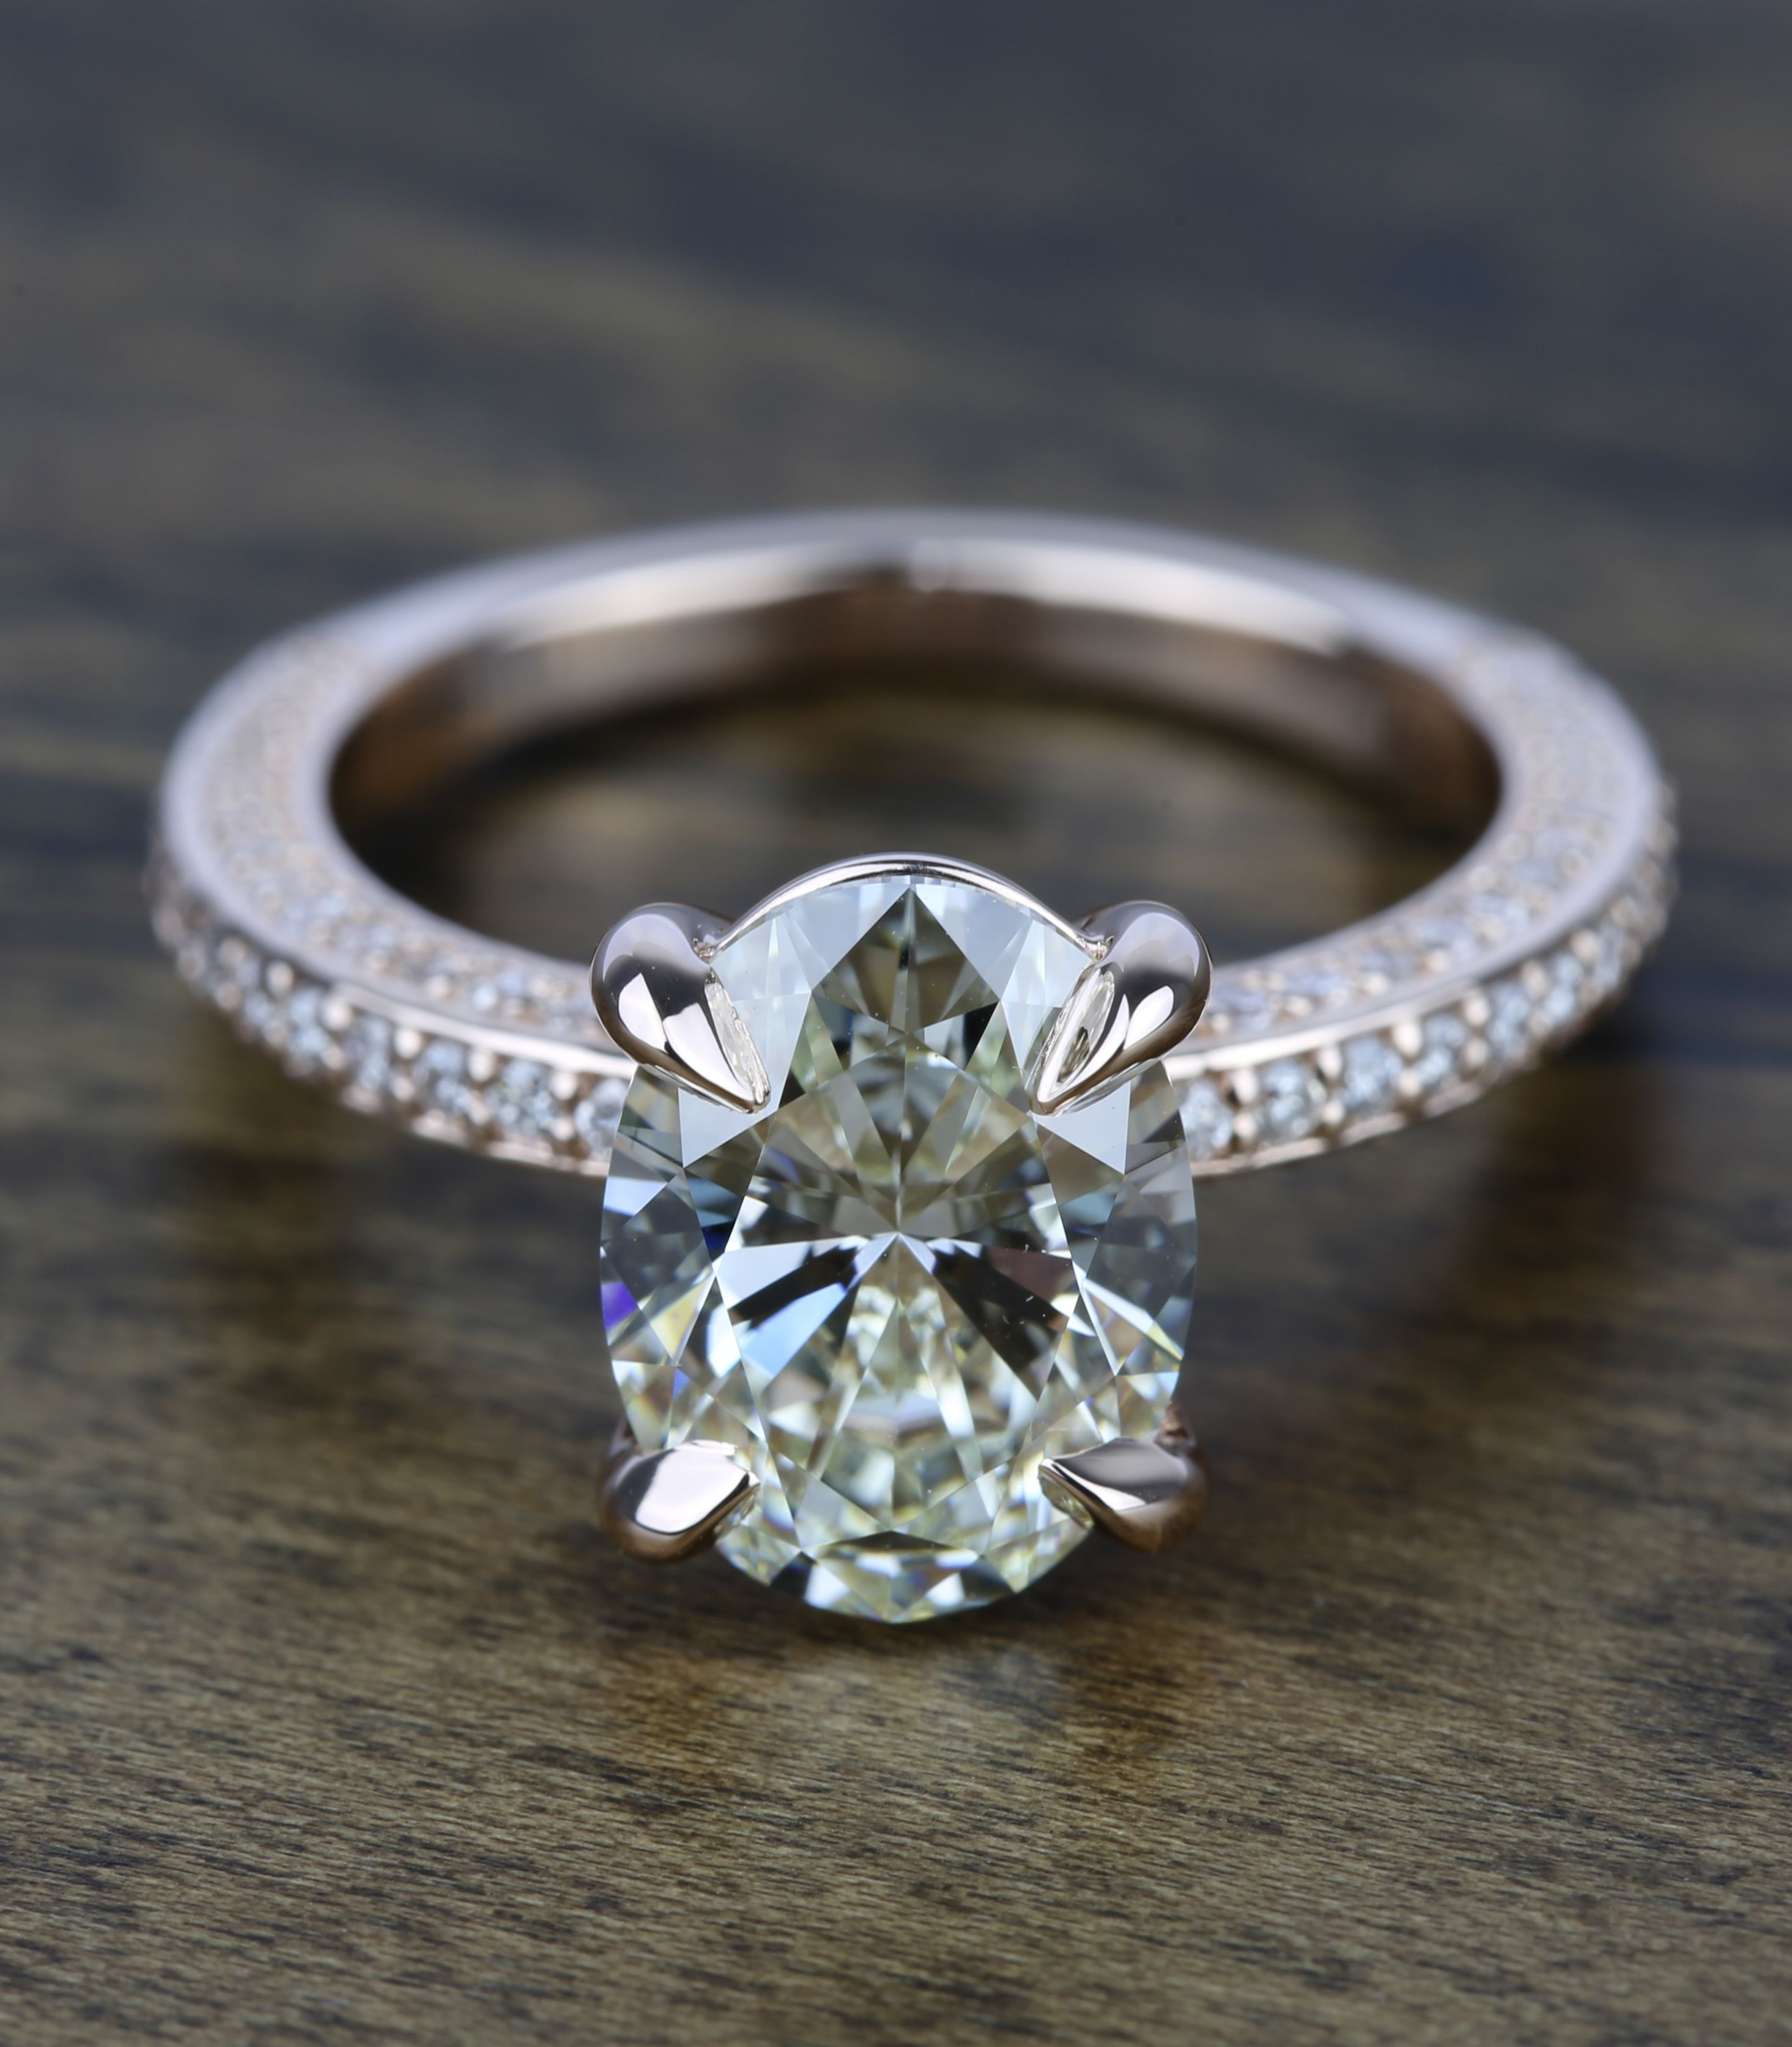 This ring features an oval diamond with a claw prong basket